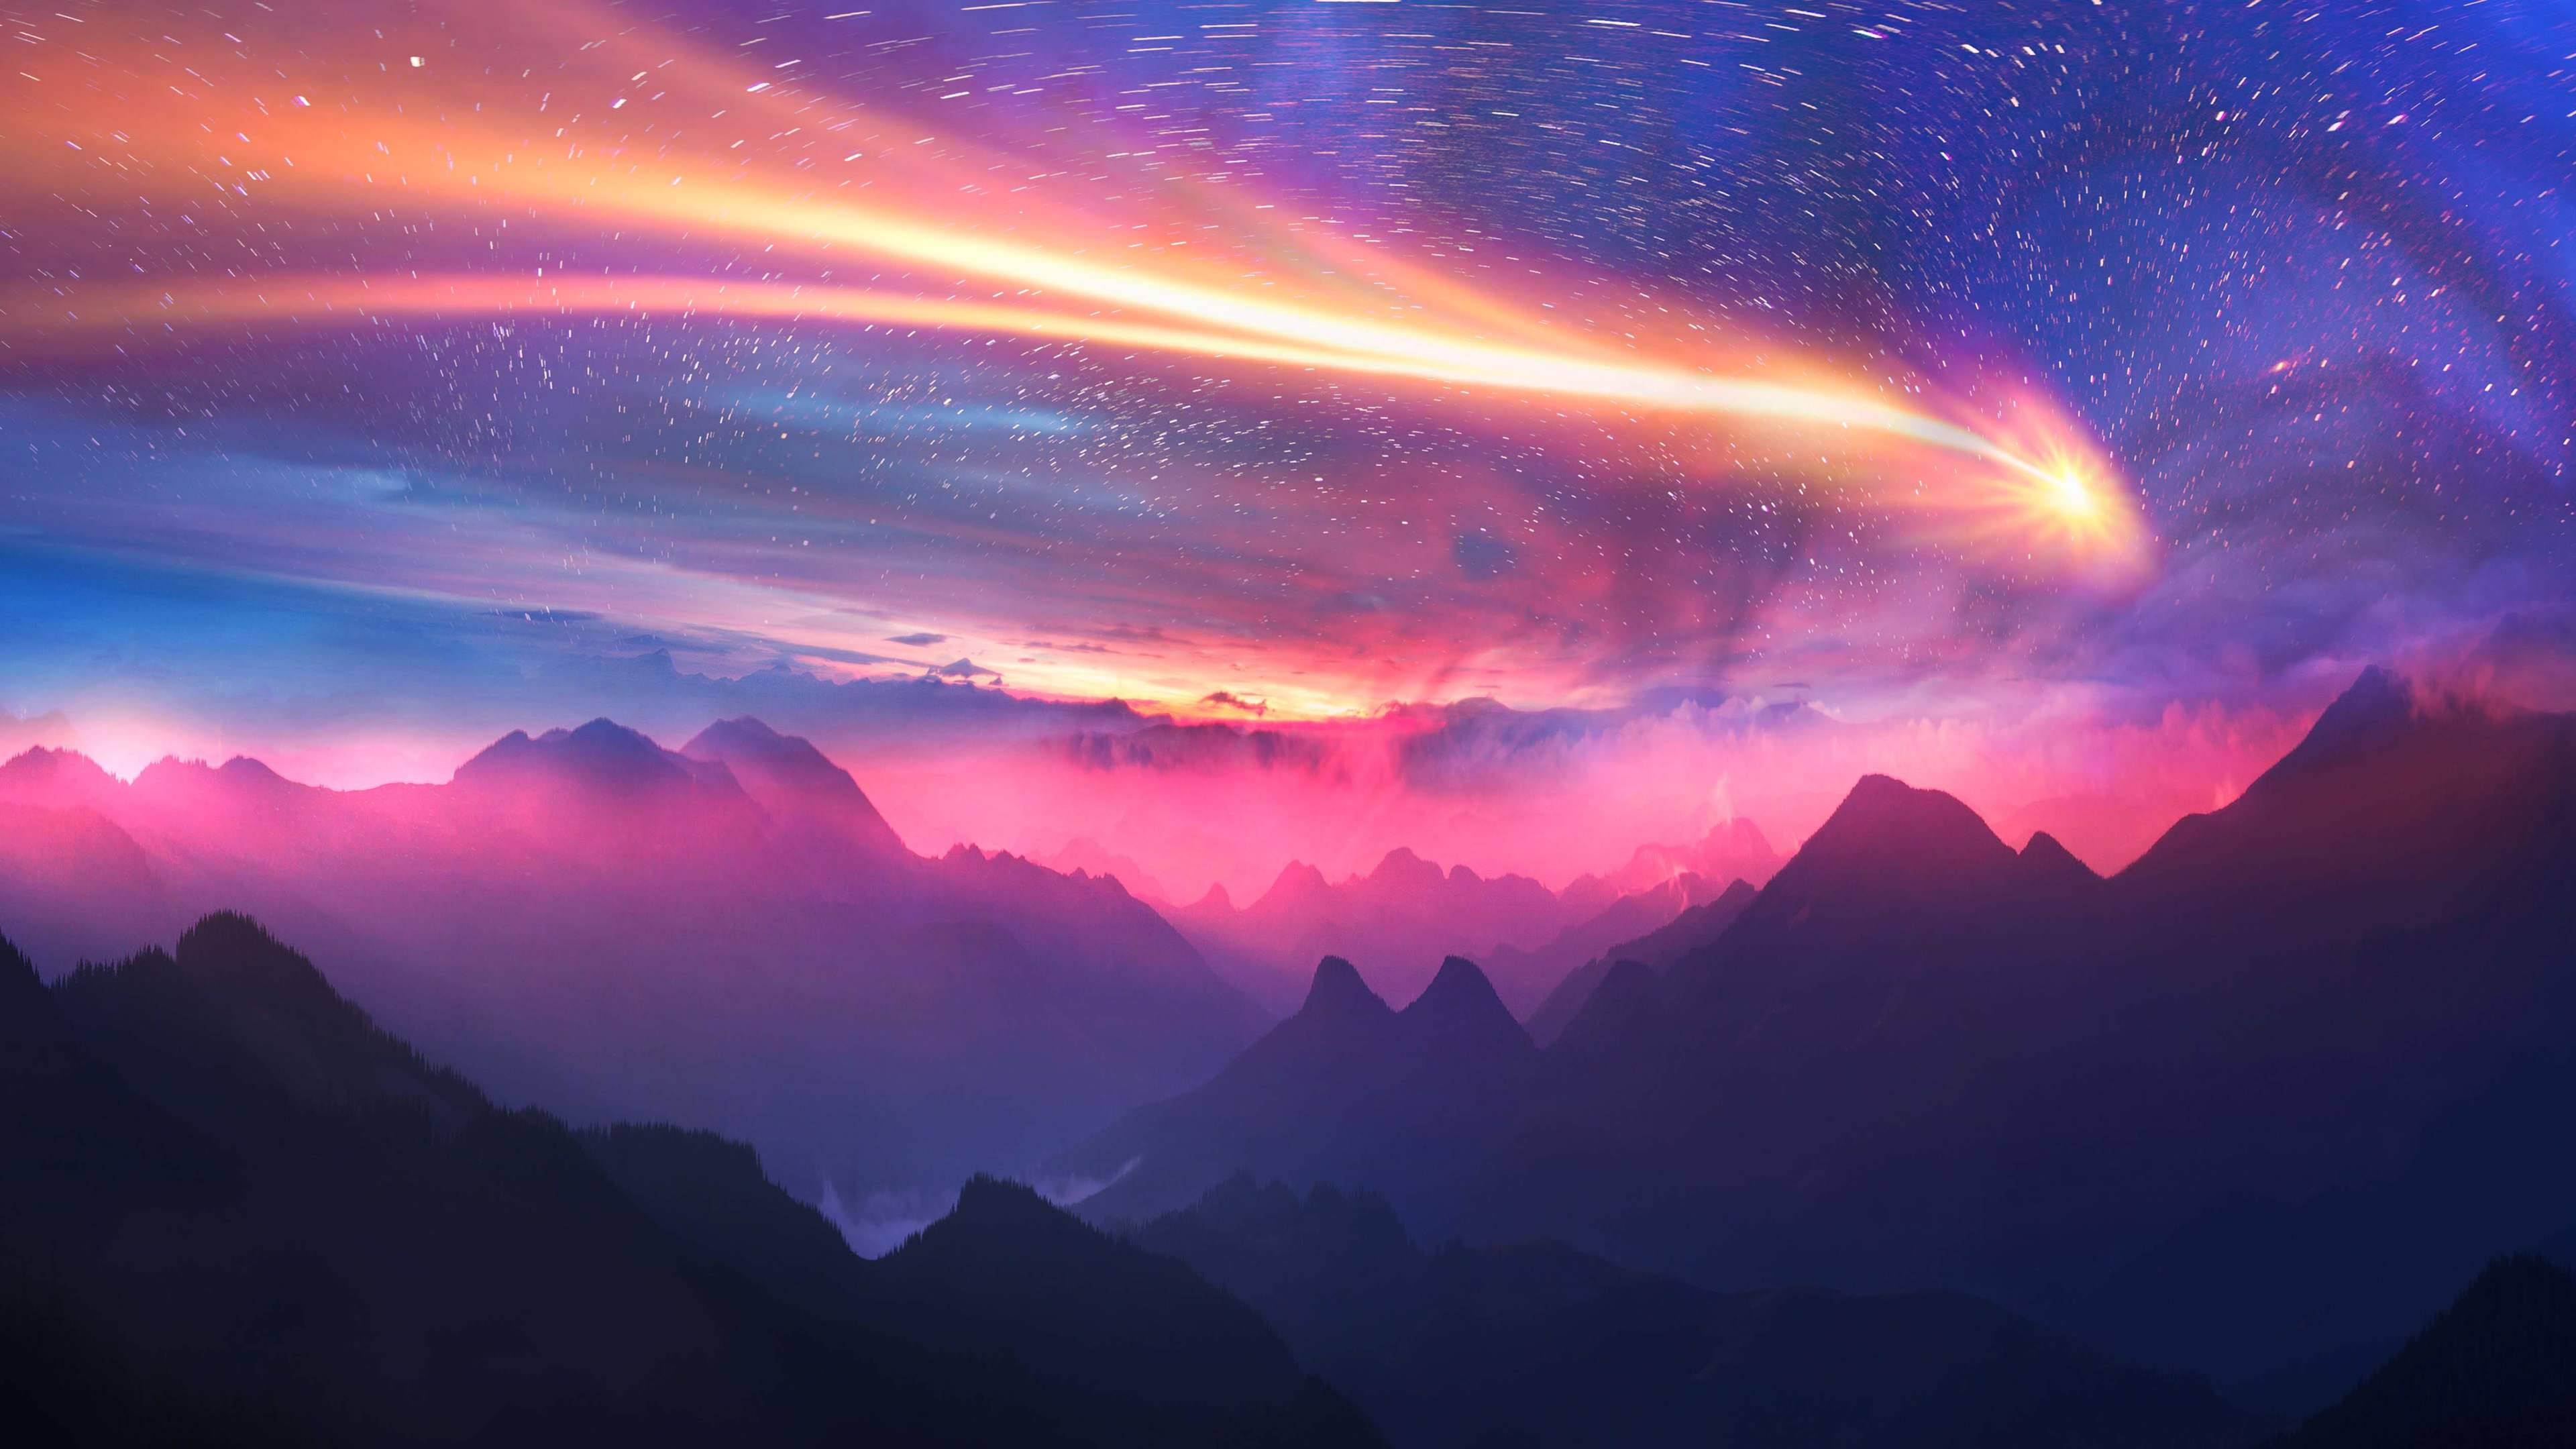 dreamy sky mountains 5k 1540754985 - Dreamy Sky Mountains 5k - sky wallpapers, mountains wallpapers, hd-wallpapers, digital art wallpapers, artwork wallpapers, artist wallpapers, 5k wallpapers, 4k-wallpapers